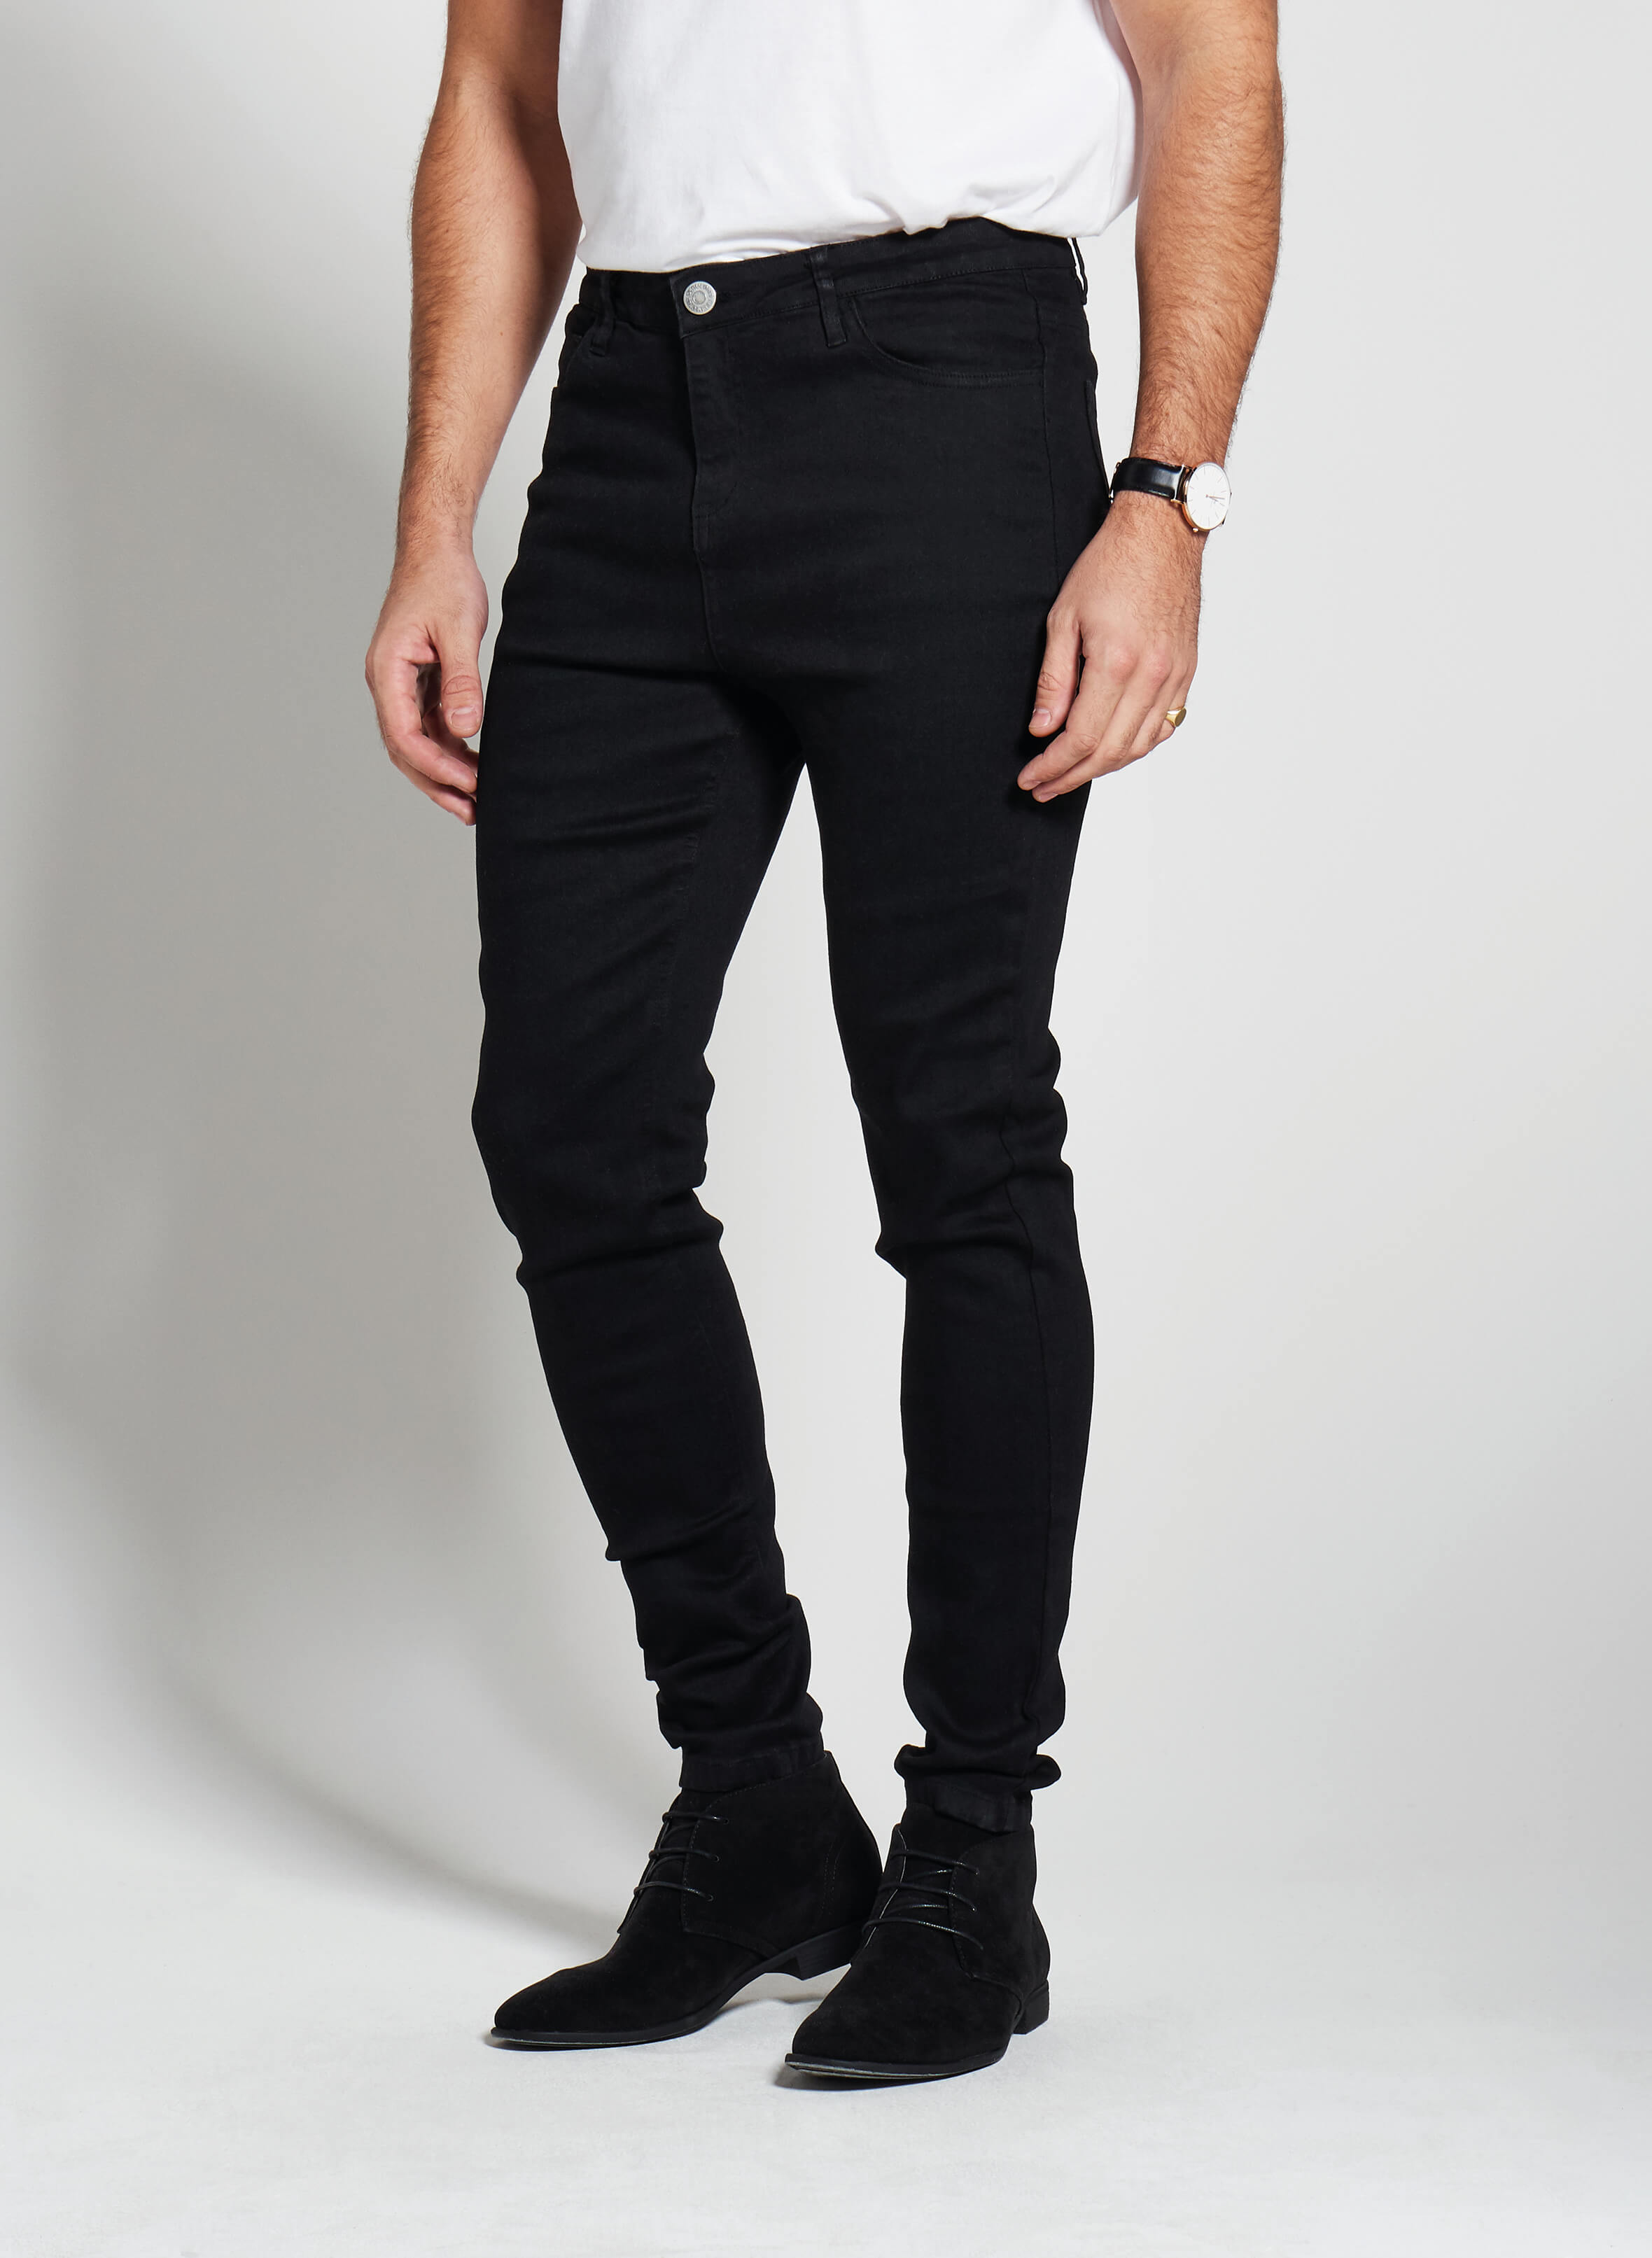 Denim Only® Slim Fit Jeans - Black